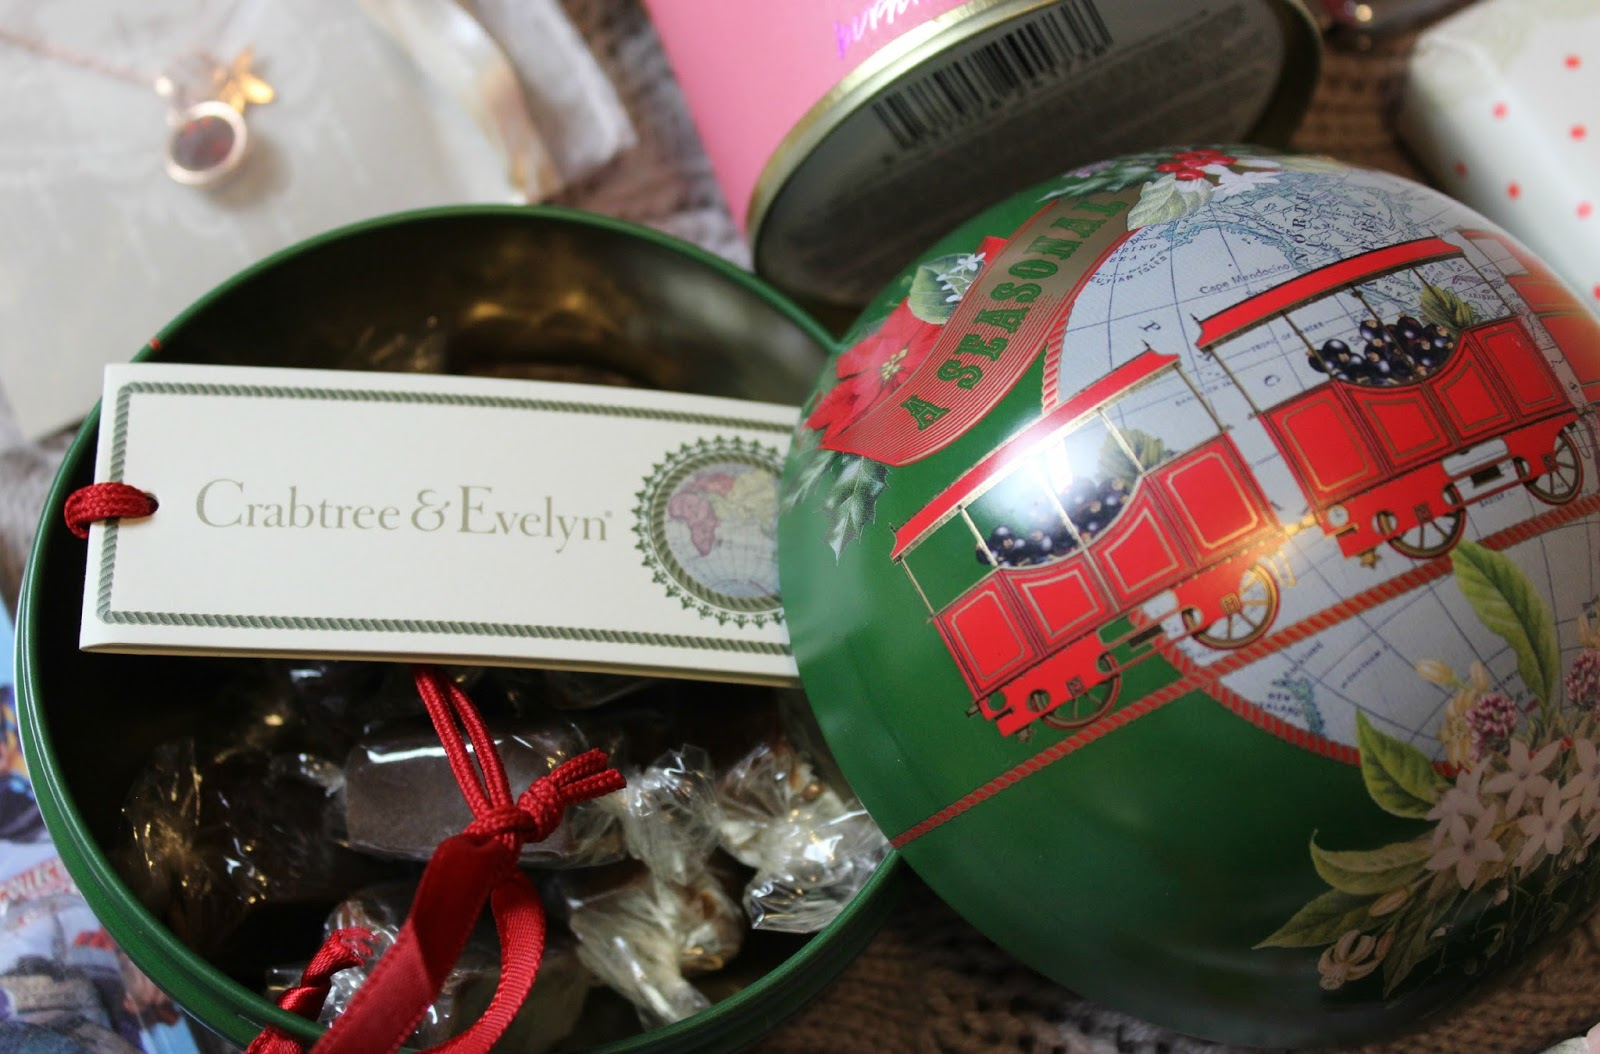 A picture of the Crabtree & Evelyn Chocolate Fudge Festive Bauble